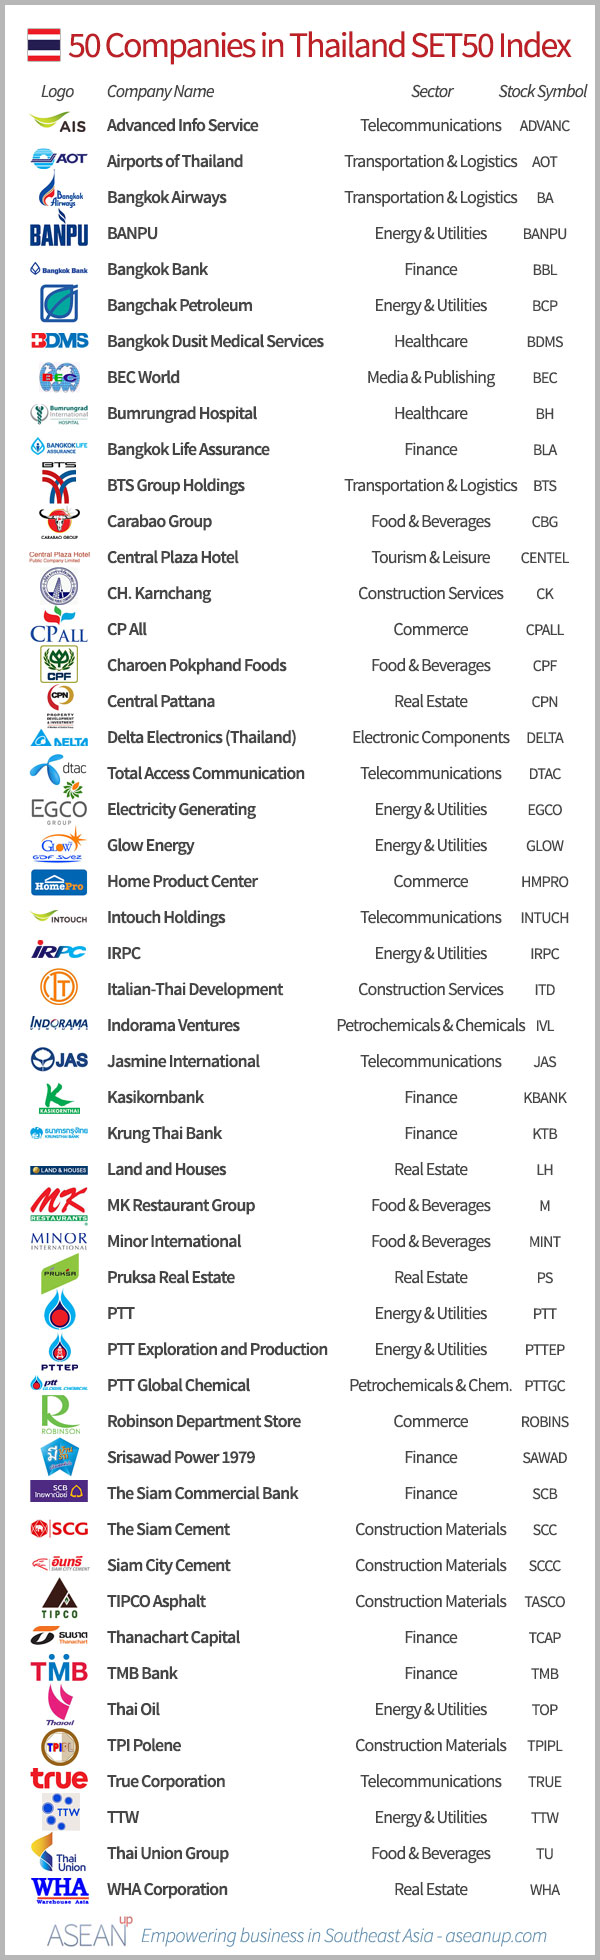 Top 50 companies from Thailand's SET50 - ASEAN UP